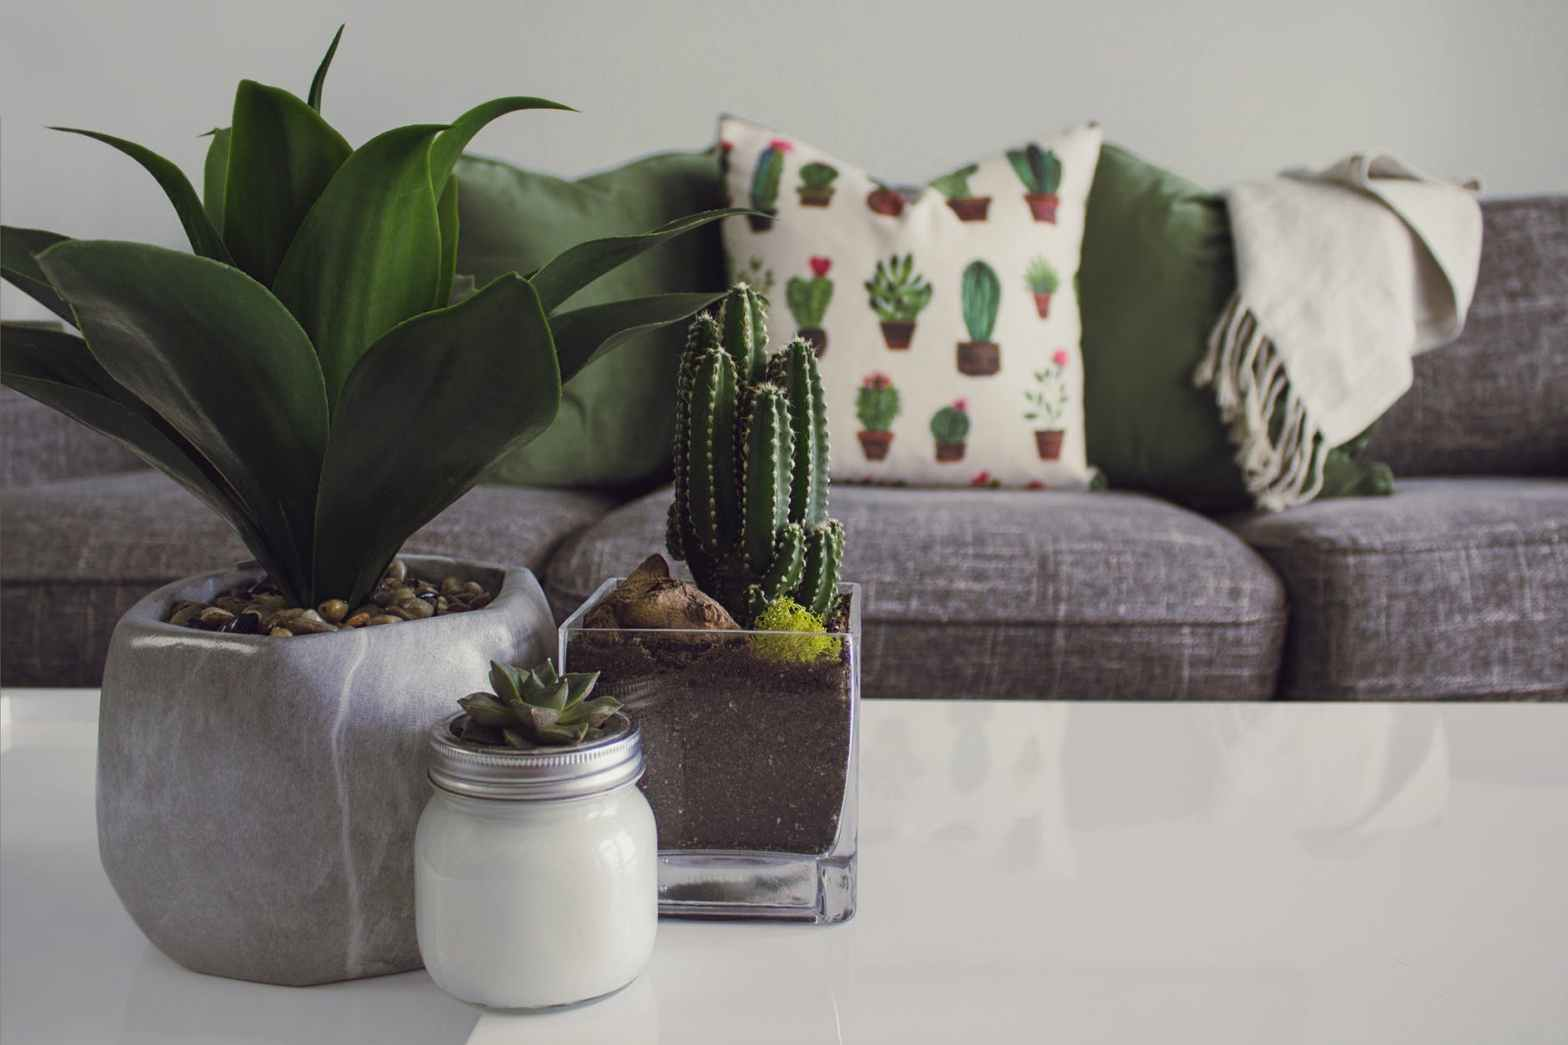 Close up of three assorted plants placed on a table. In the background is a couch, with a pillow with a cactus design on the side. This is one of the offices of Moxie Family Therapy. We offer therapy for women, mental health services in orange county, ca, and more! Contact us today to get in contact with a therapist for women in orange county, ca.